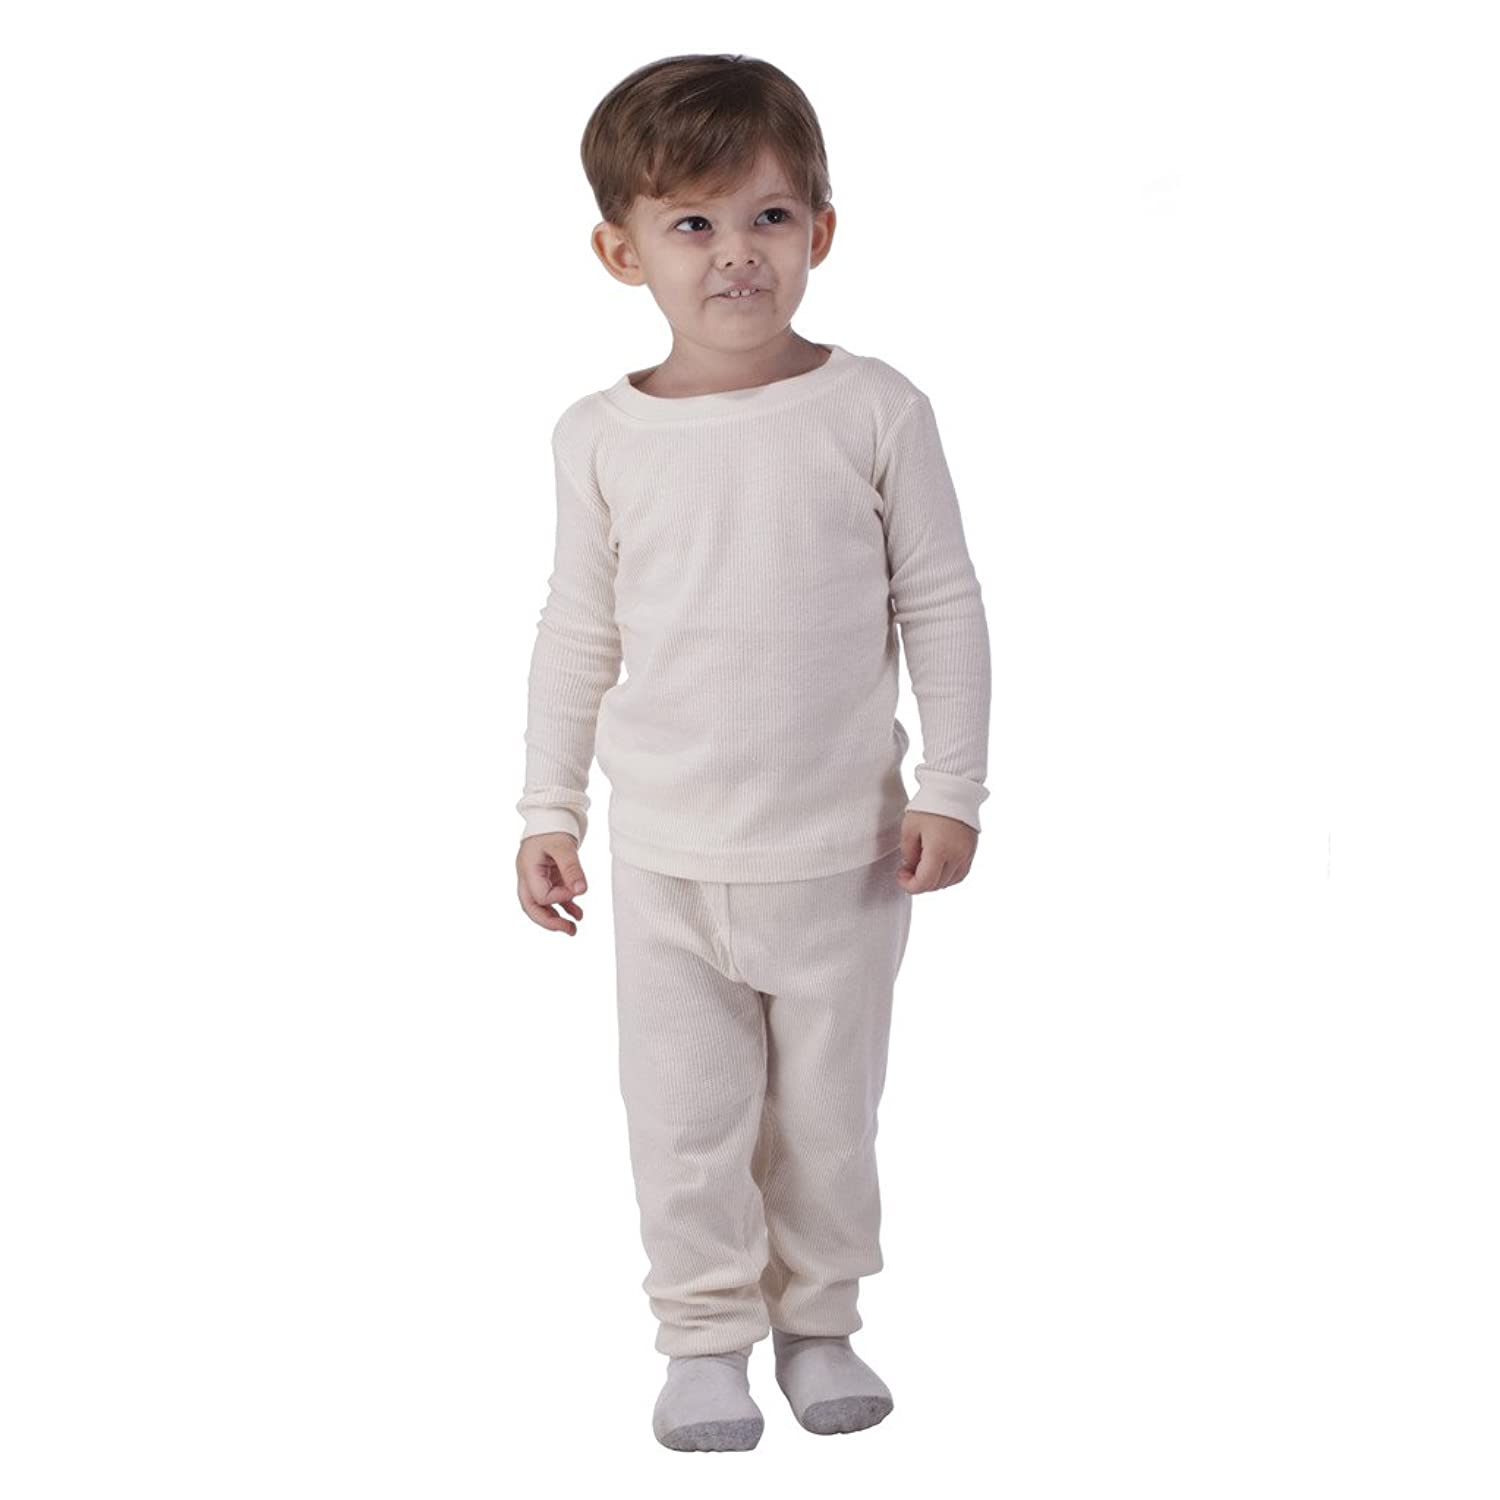 Boys' underwear is made to feel comfortable all day long and features elastic waistbands and breathable cotton that provide extra support and can help keep him cool, even underneath a boys' school uniform. Whether he's wearing a button-down and khakis or jeans and a t-shirt, it's important to slip a few pairs of boys' long underwear and thick.